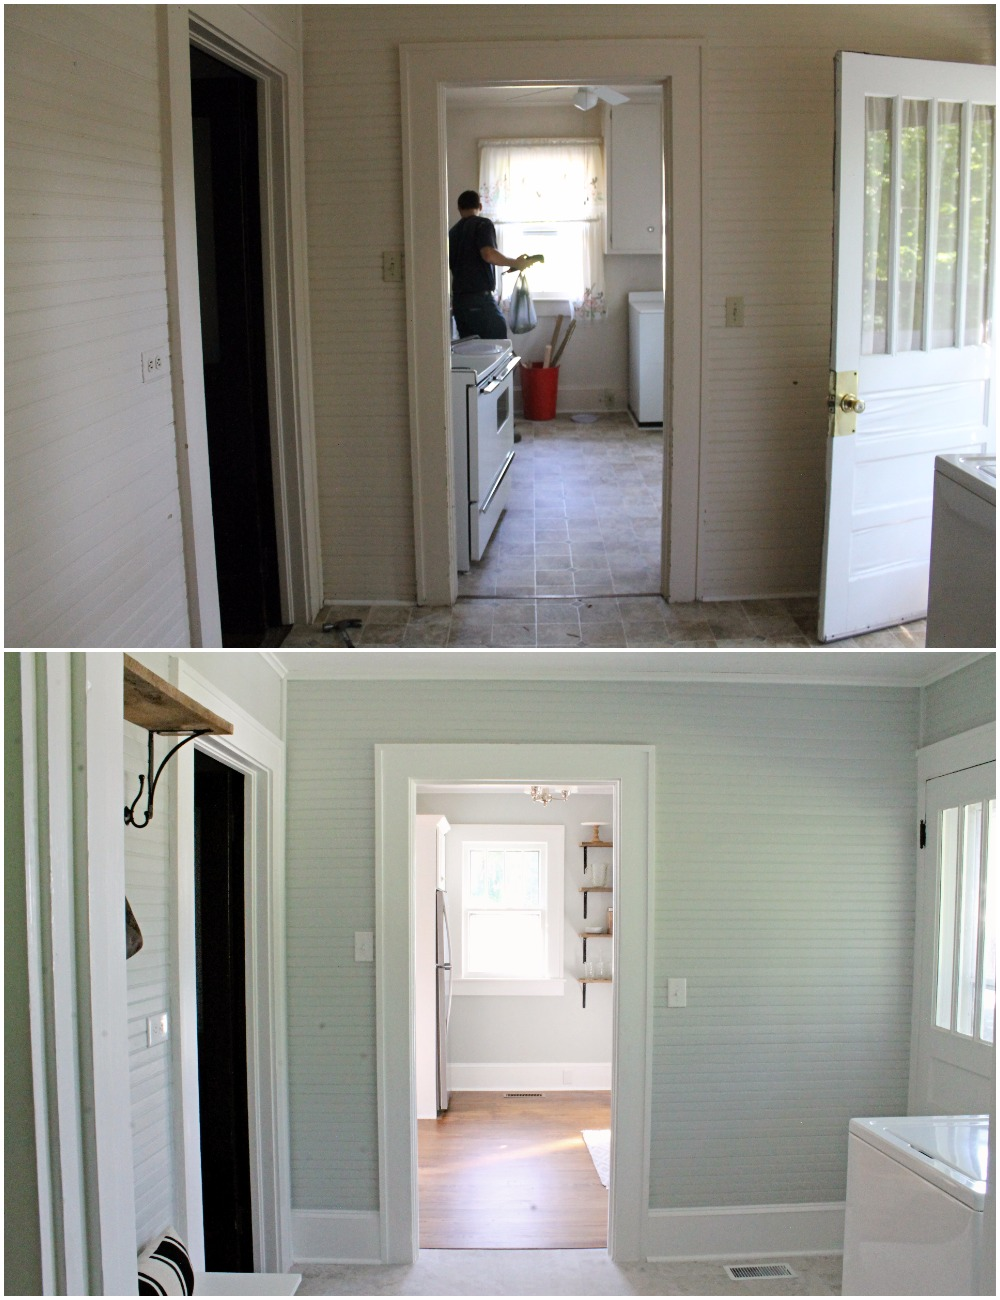 House Flipping Before and Afters - DIY BUDGET LAUNDRY ROOM MUD ROOM IDEAS (2).jpg